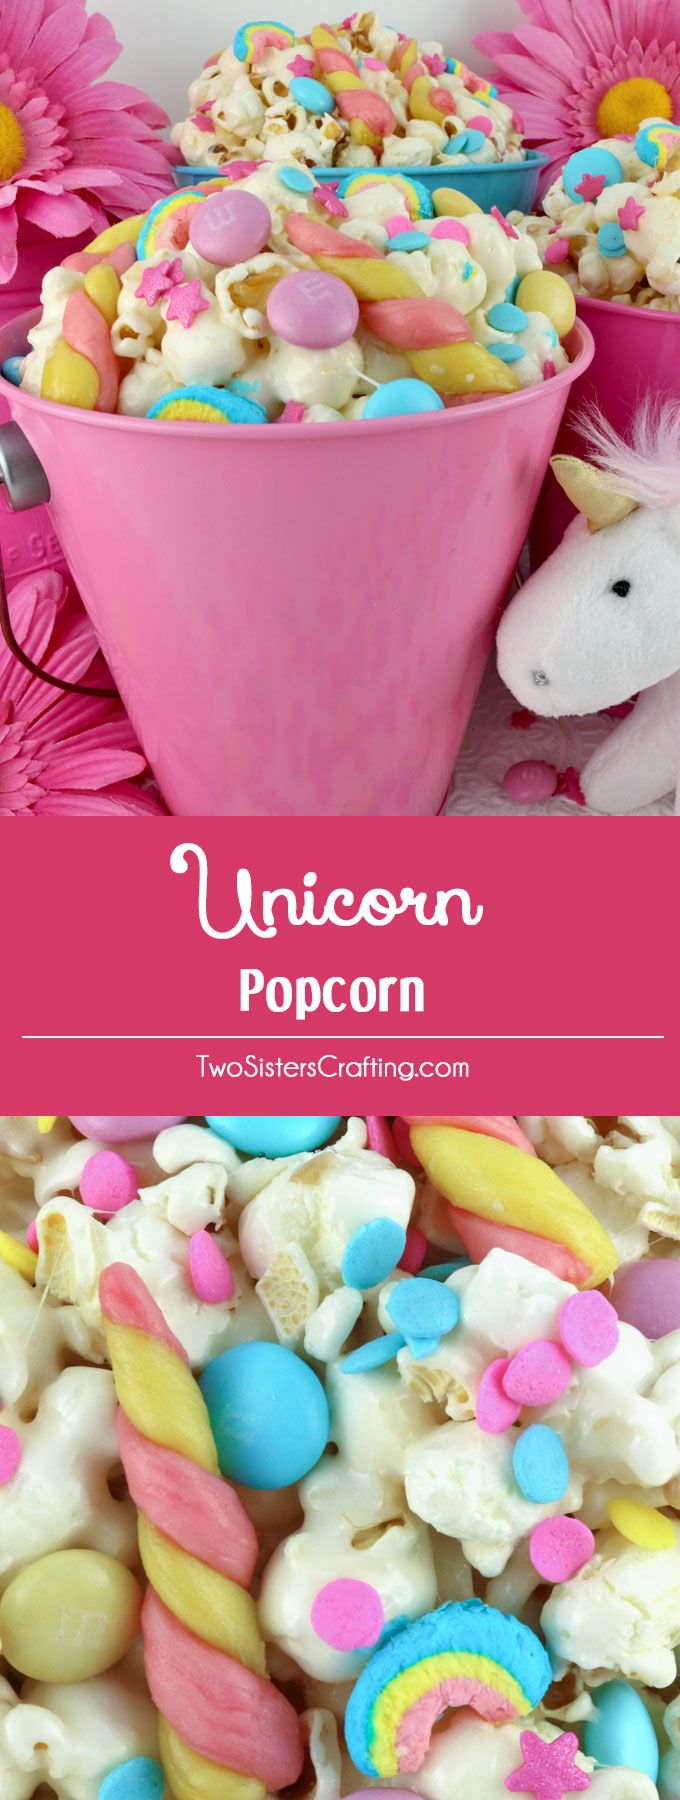 Unicorn Popcorn - sweet and salty popcorn mixed with sprinkles, candy and tasty unicorn horns. An adorable and delicious treat your family won't soon forget. It is both fun and delicious, a great combination! A fun anytime snack that would also be a great